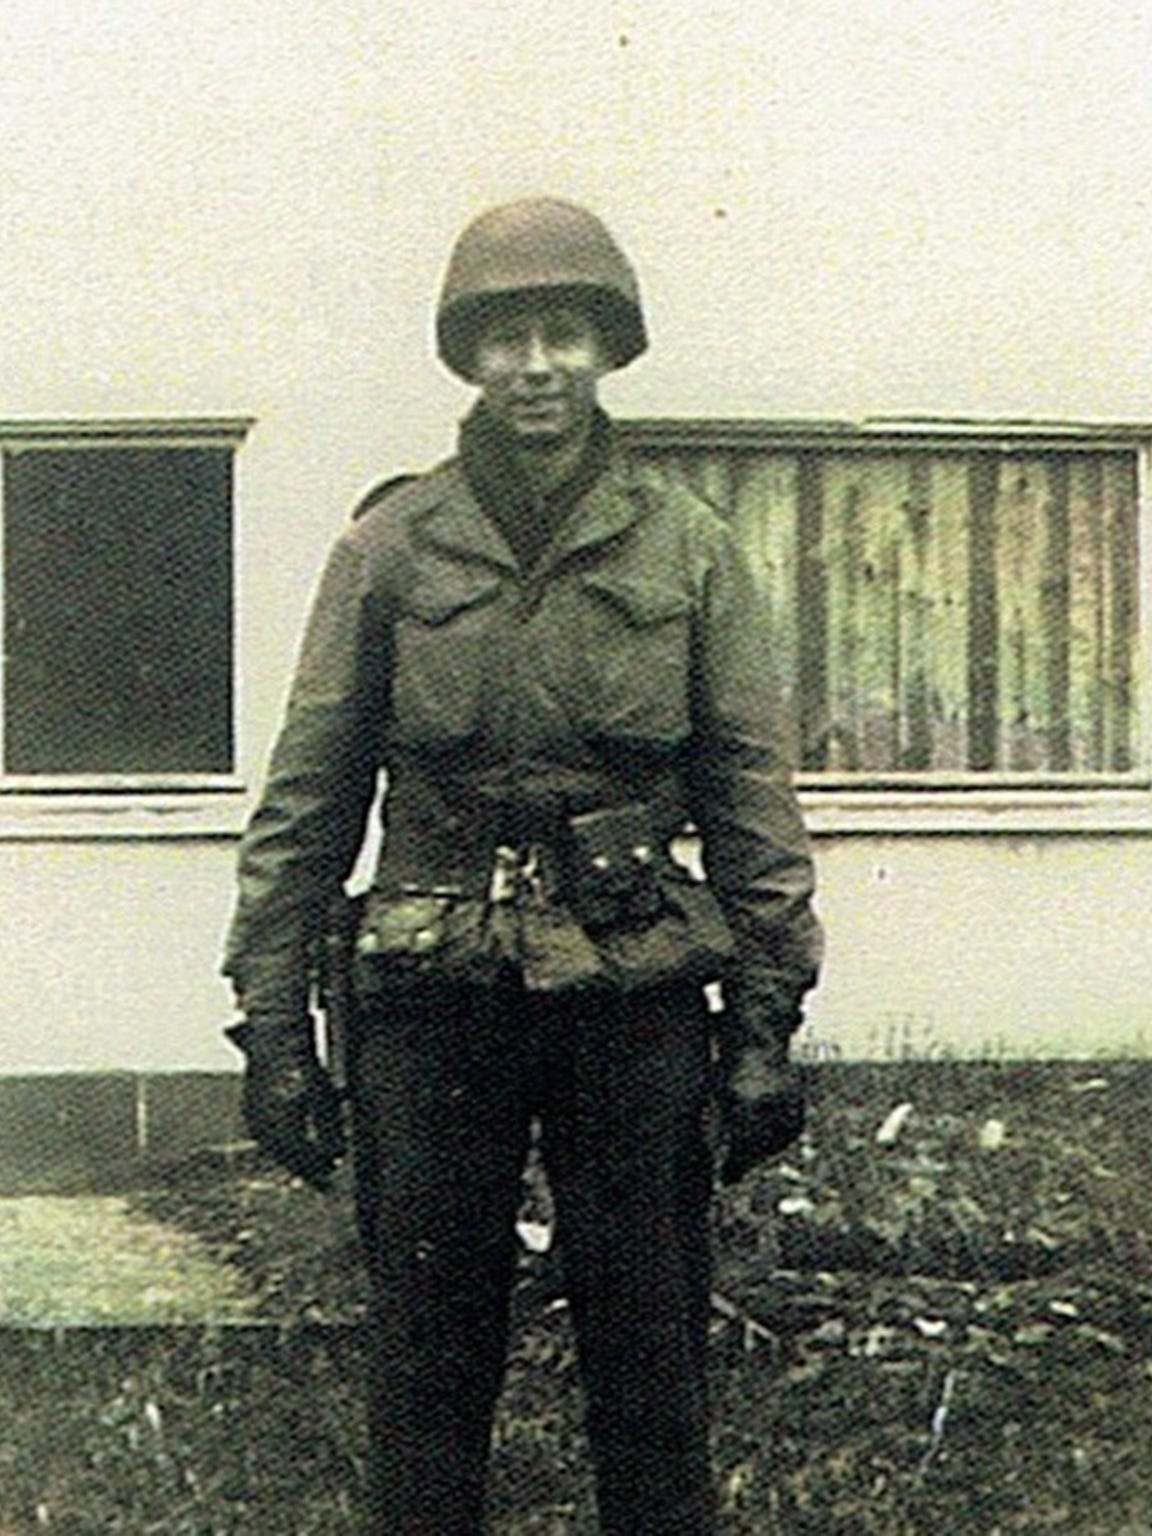 Paul Stegall during his military service.